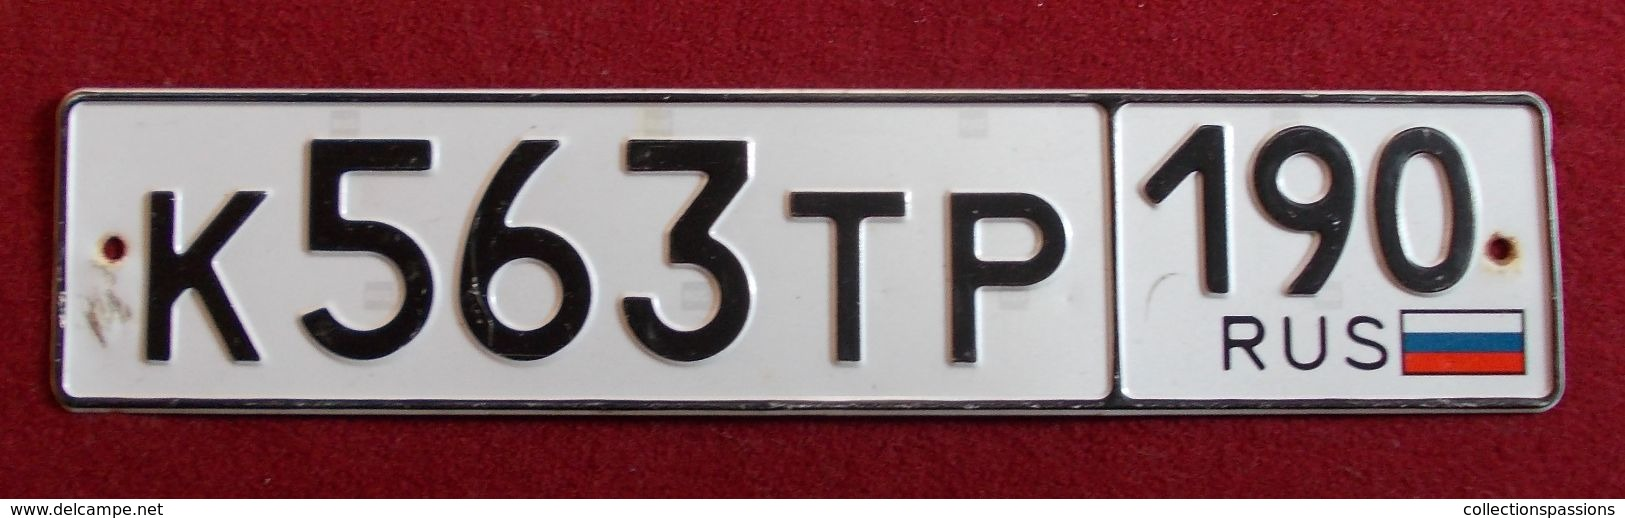 Plaque D'immatriculation - RUSSIE - - Number Plates